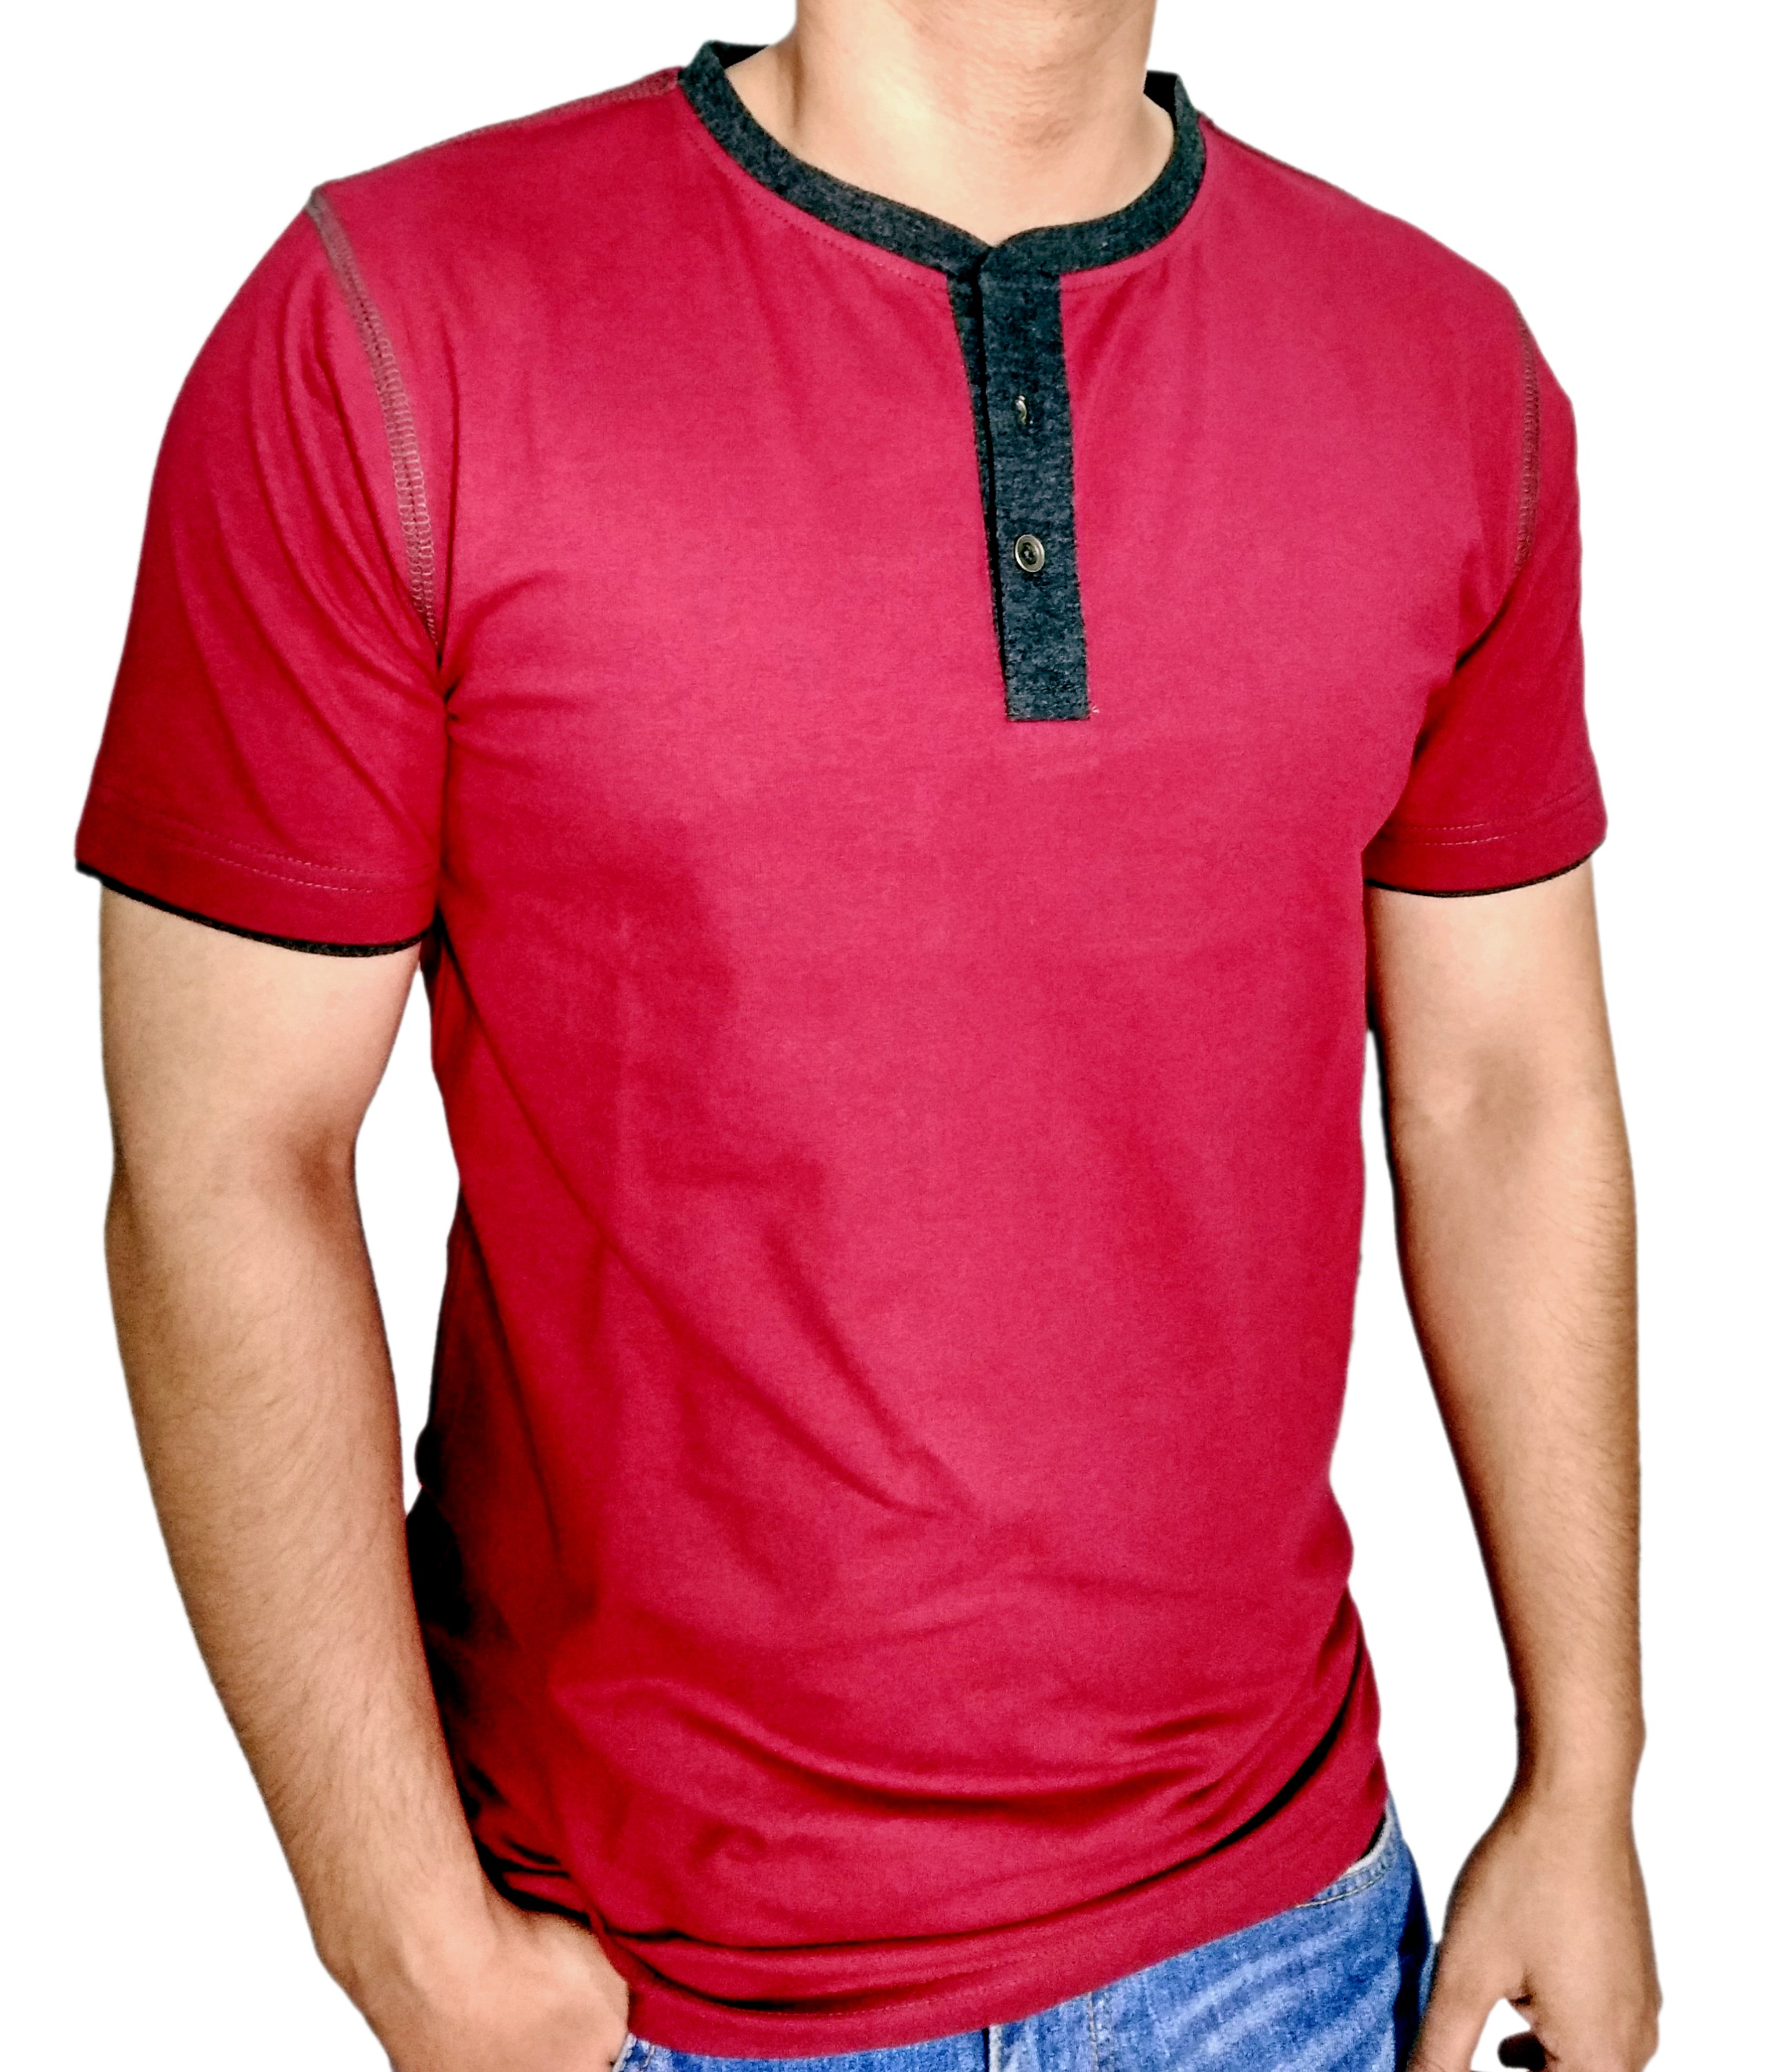 Mens burgundy henley t shirt with bk 15 milange moon patch